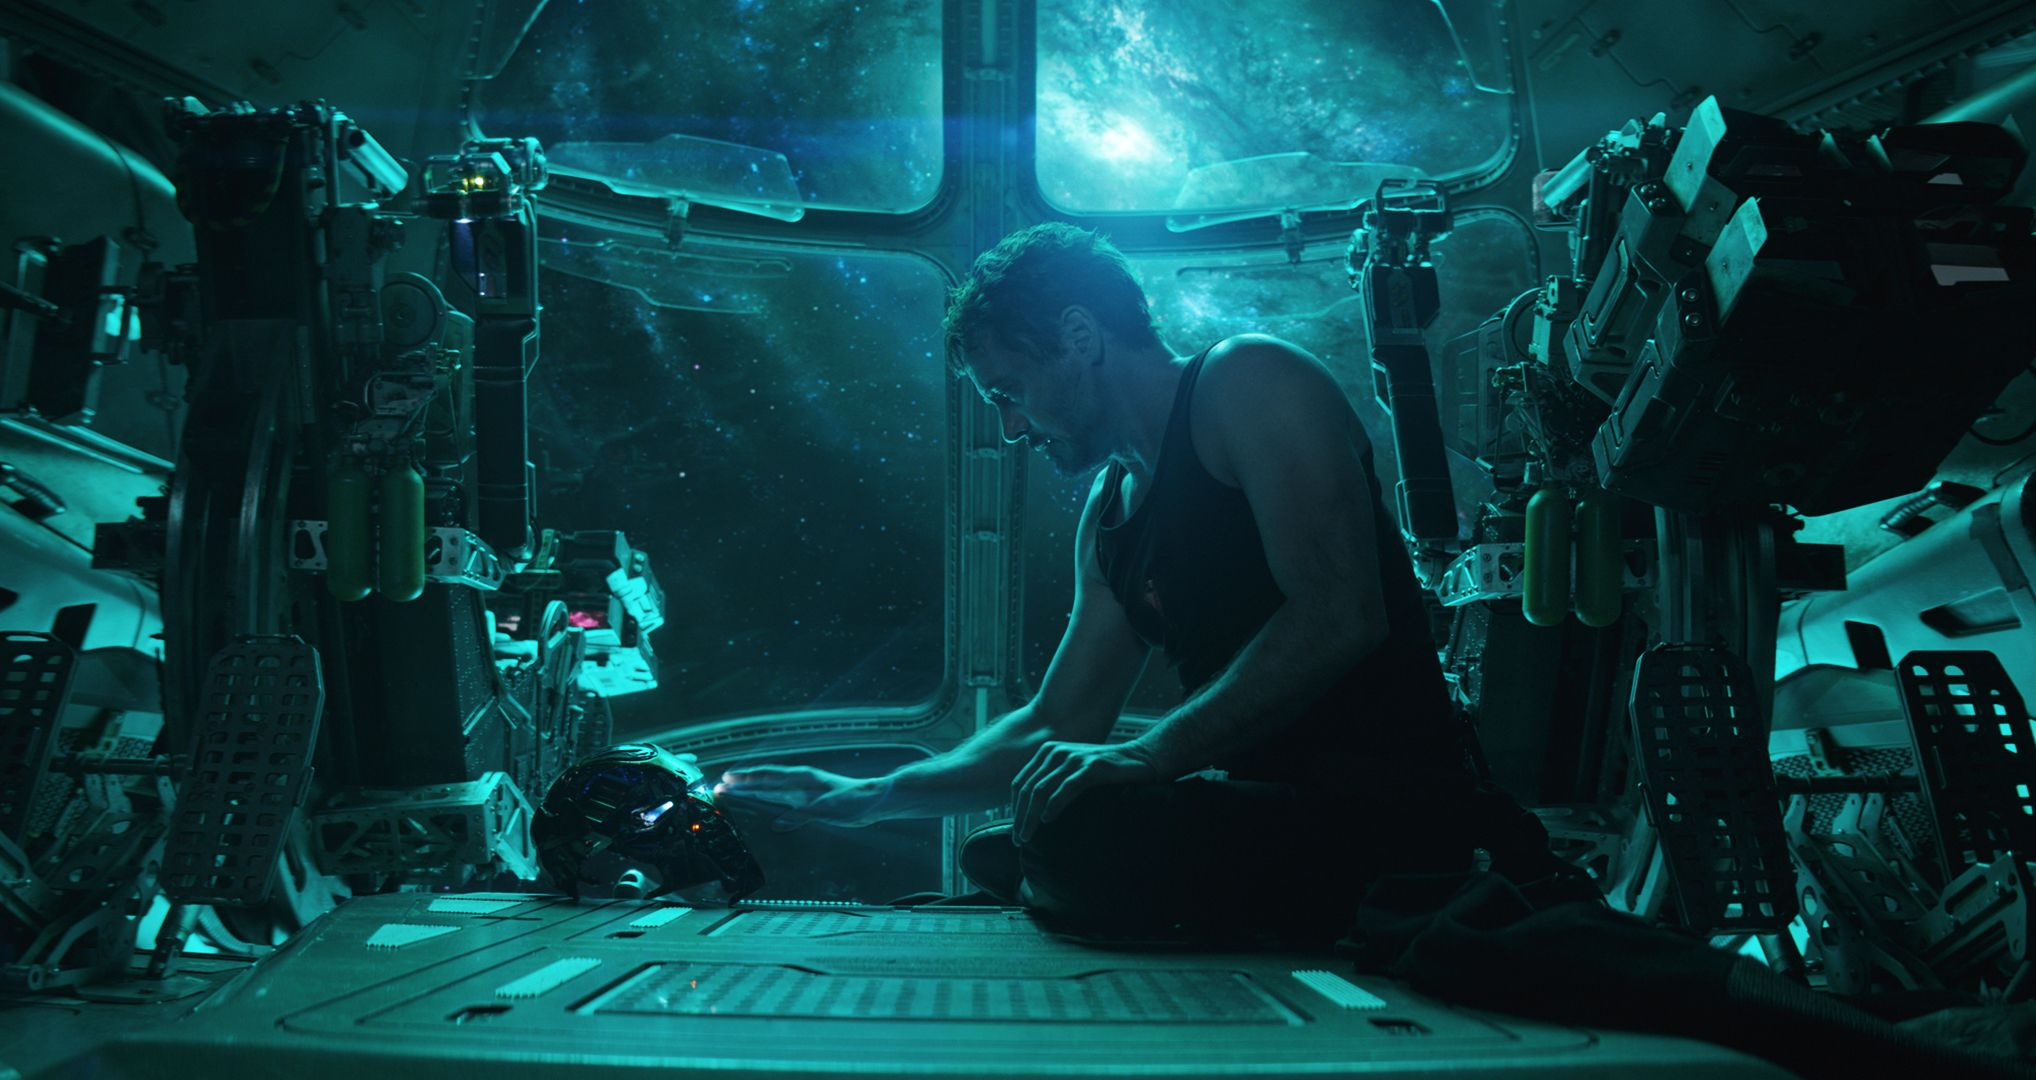 How Does 'Avengers: Endgame' End? I Present: 5 of the Best Fan Theories